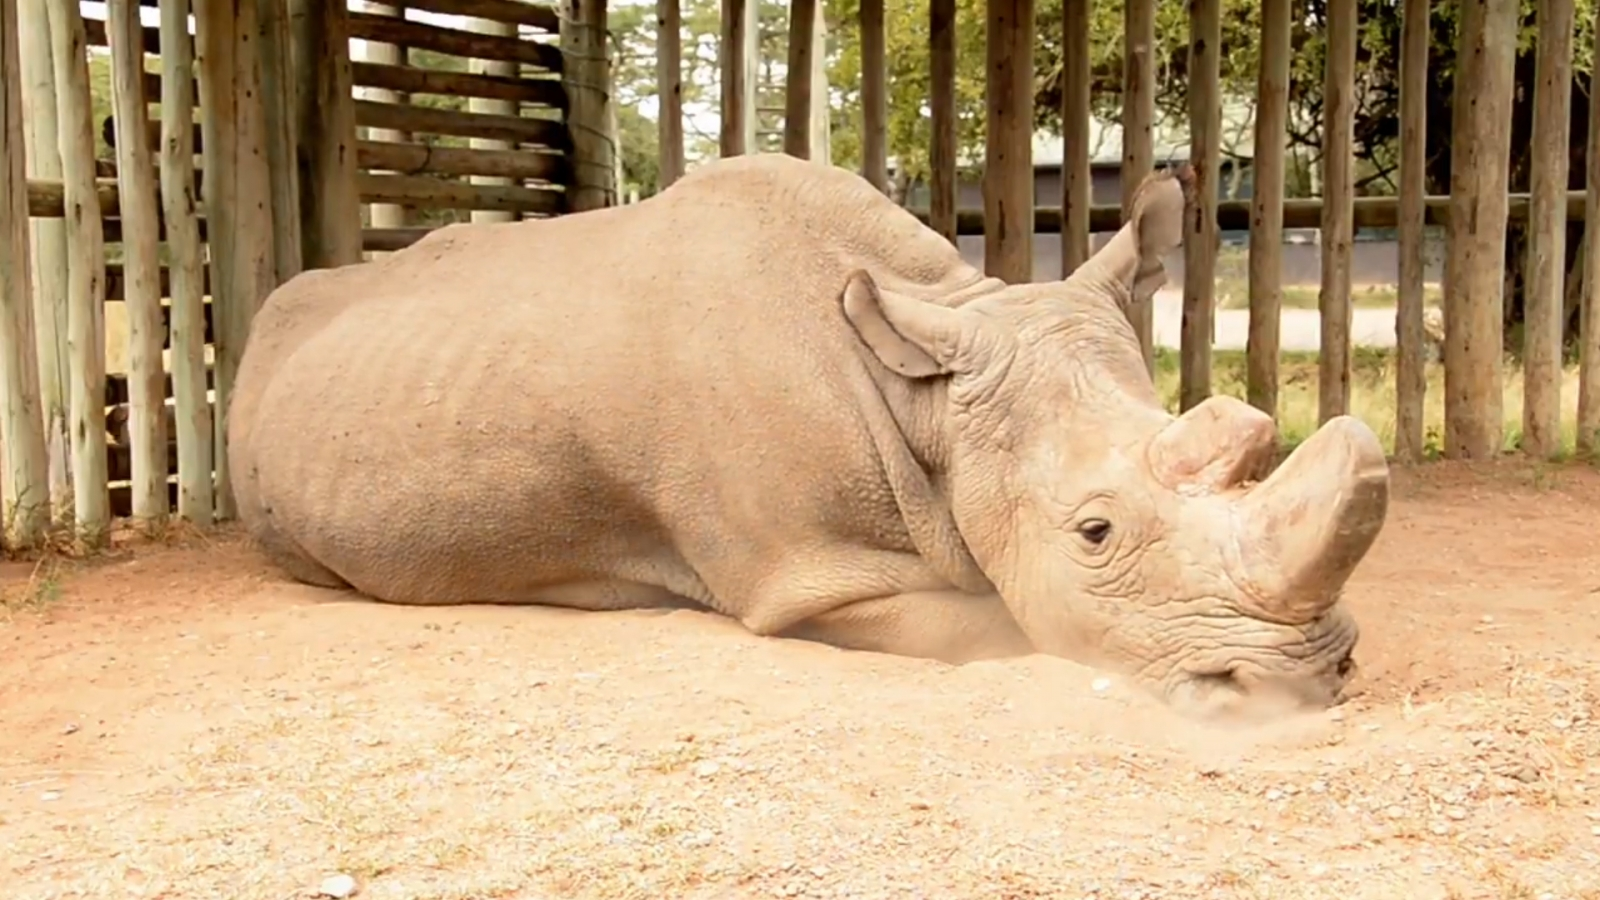 heartbreaking-video-shows-the-last-male-northern-white-rhino-this-is-what-extinction-looks-like